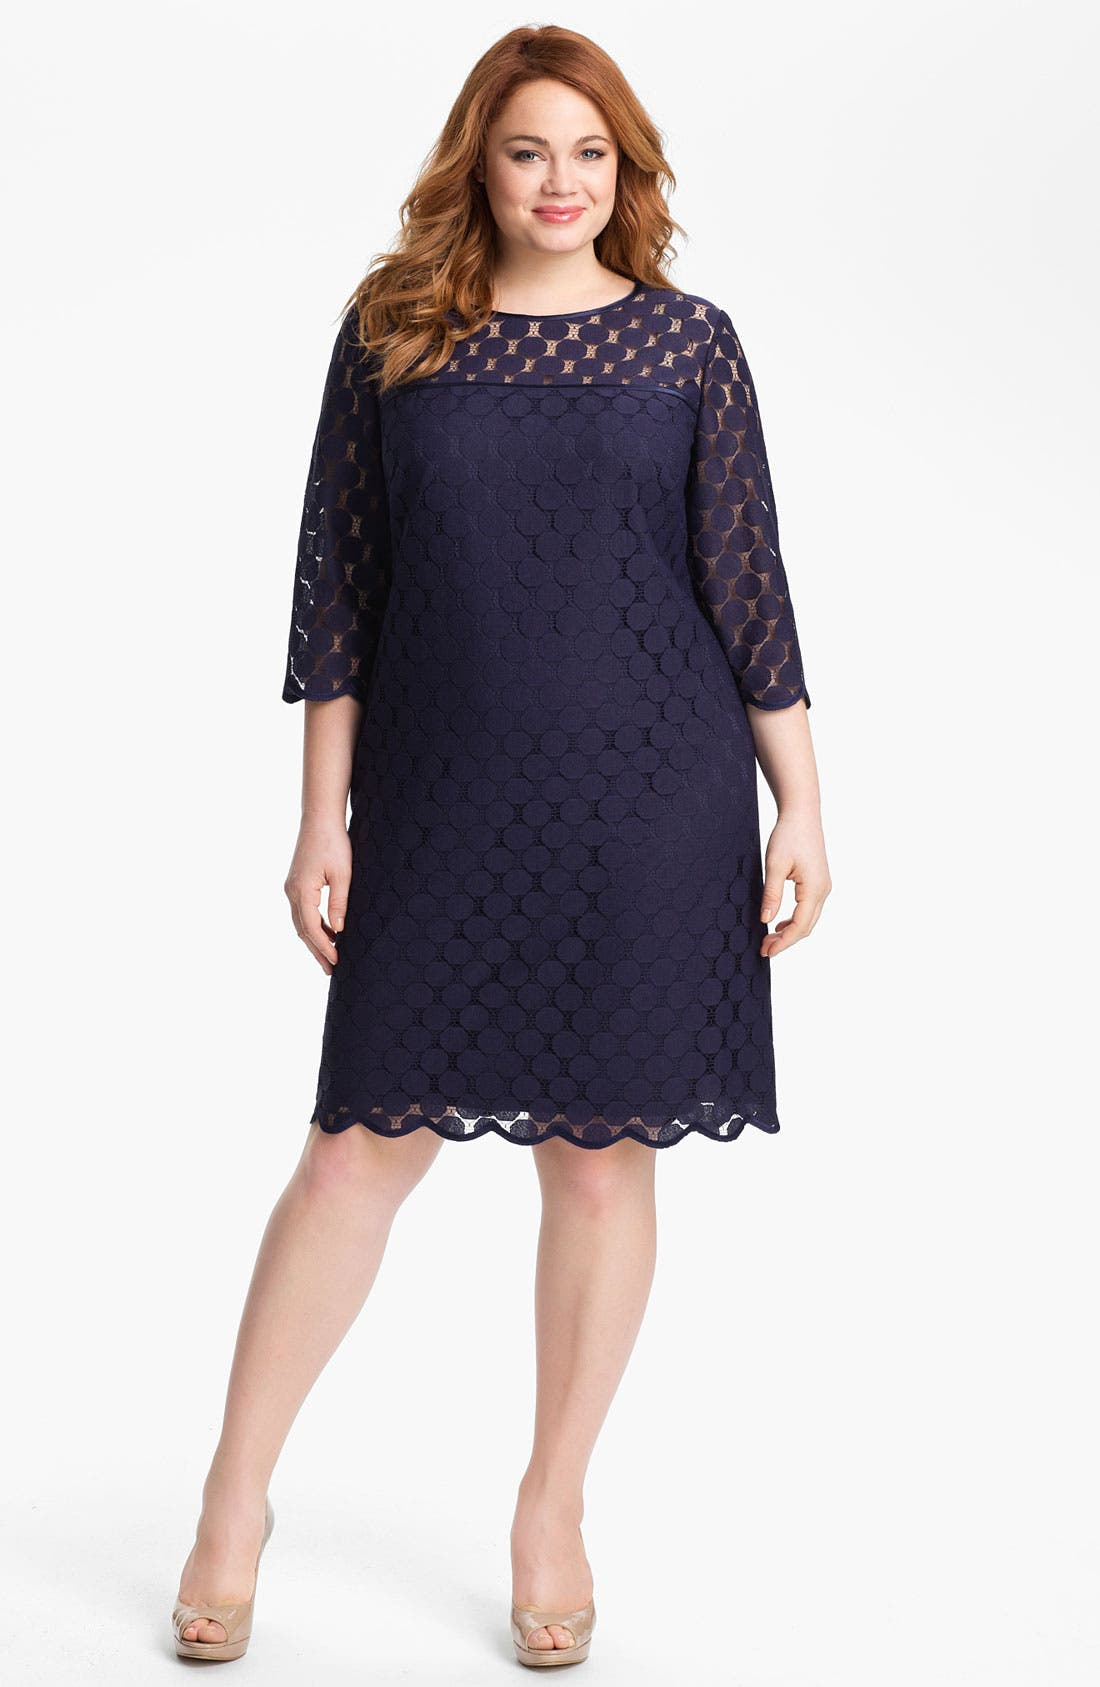 Main Image - Adrianna Papell Polka Dot Lace Dress (Plus Size)